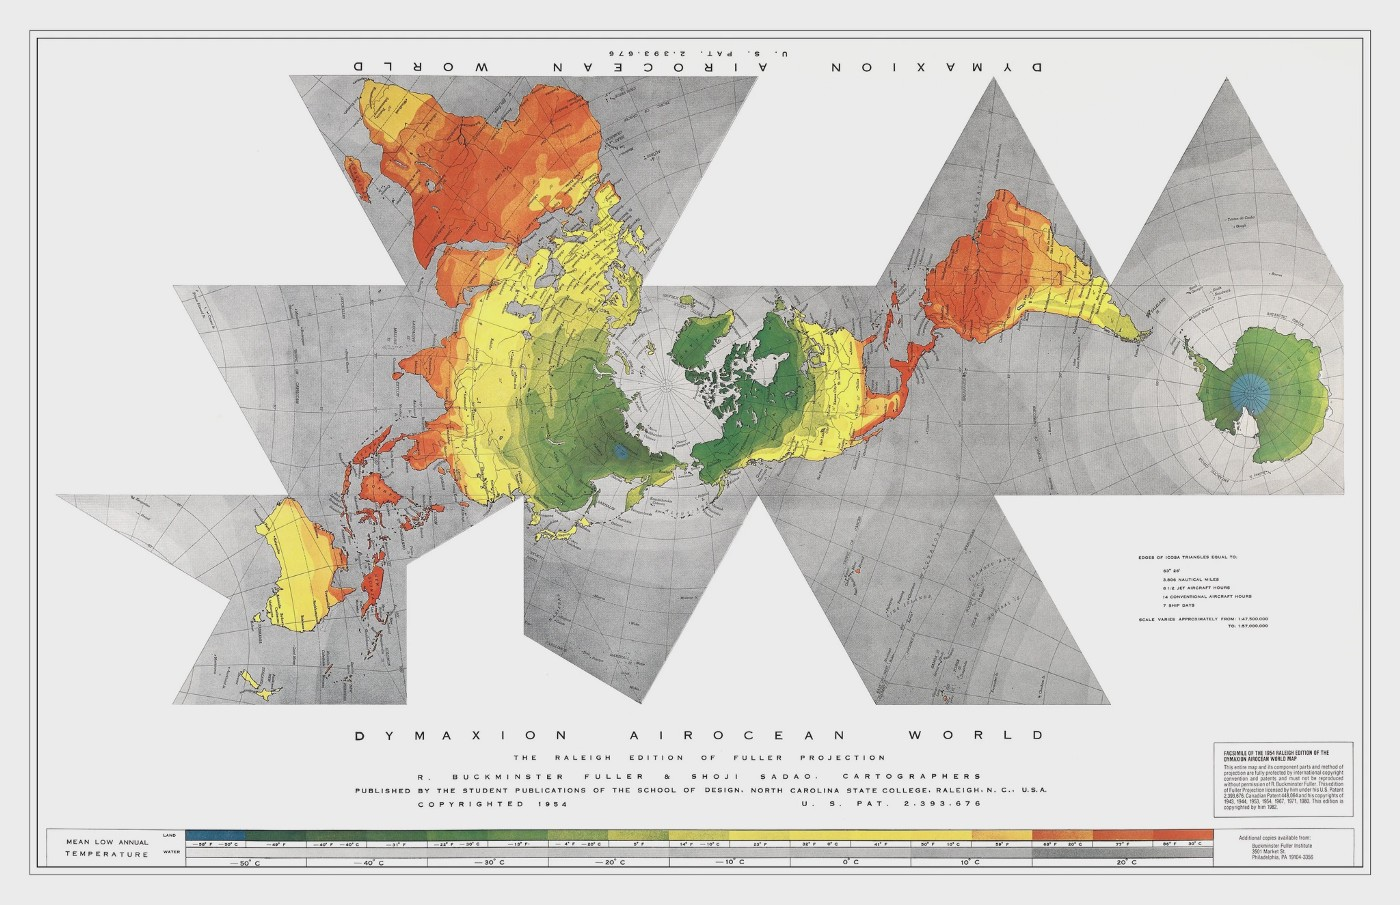 A non-conventional world map projection consisting of different triangles and quadrangles. Its northern hemisphere lies at its center, with Europe, Asia, Africa and Australia stretching towards the left hand side of the map, and America and Antarctica stretching towards the right hand side of the map.